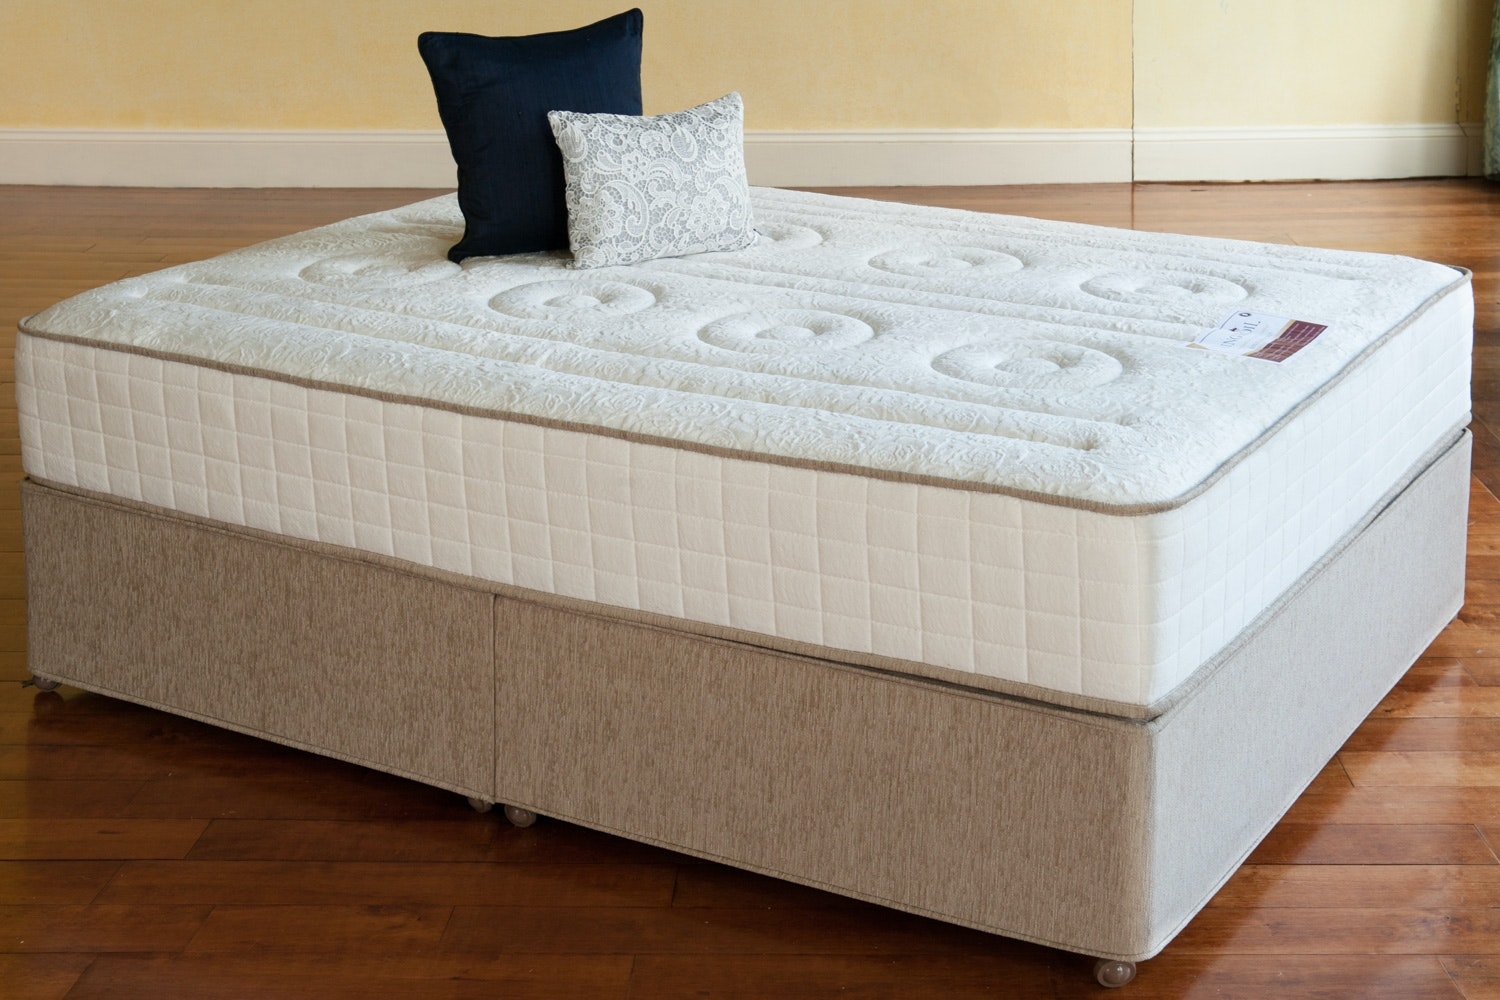 with ordinary throughout pertaining mattress elegant sets the to rooms collection in incredible sofia go most fresh room amazing beautiful vergara bedroom furniture